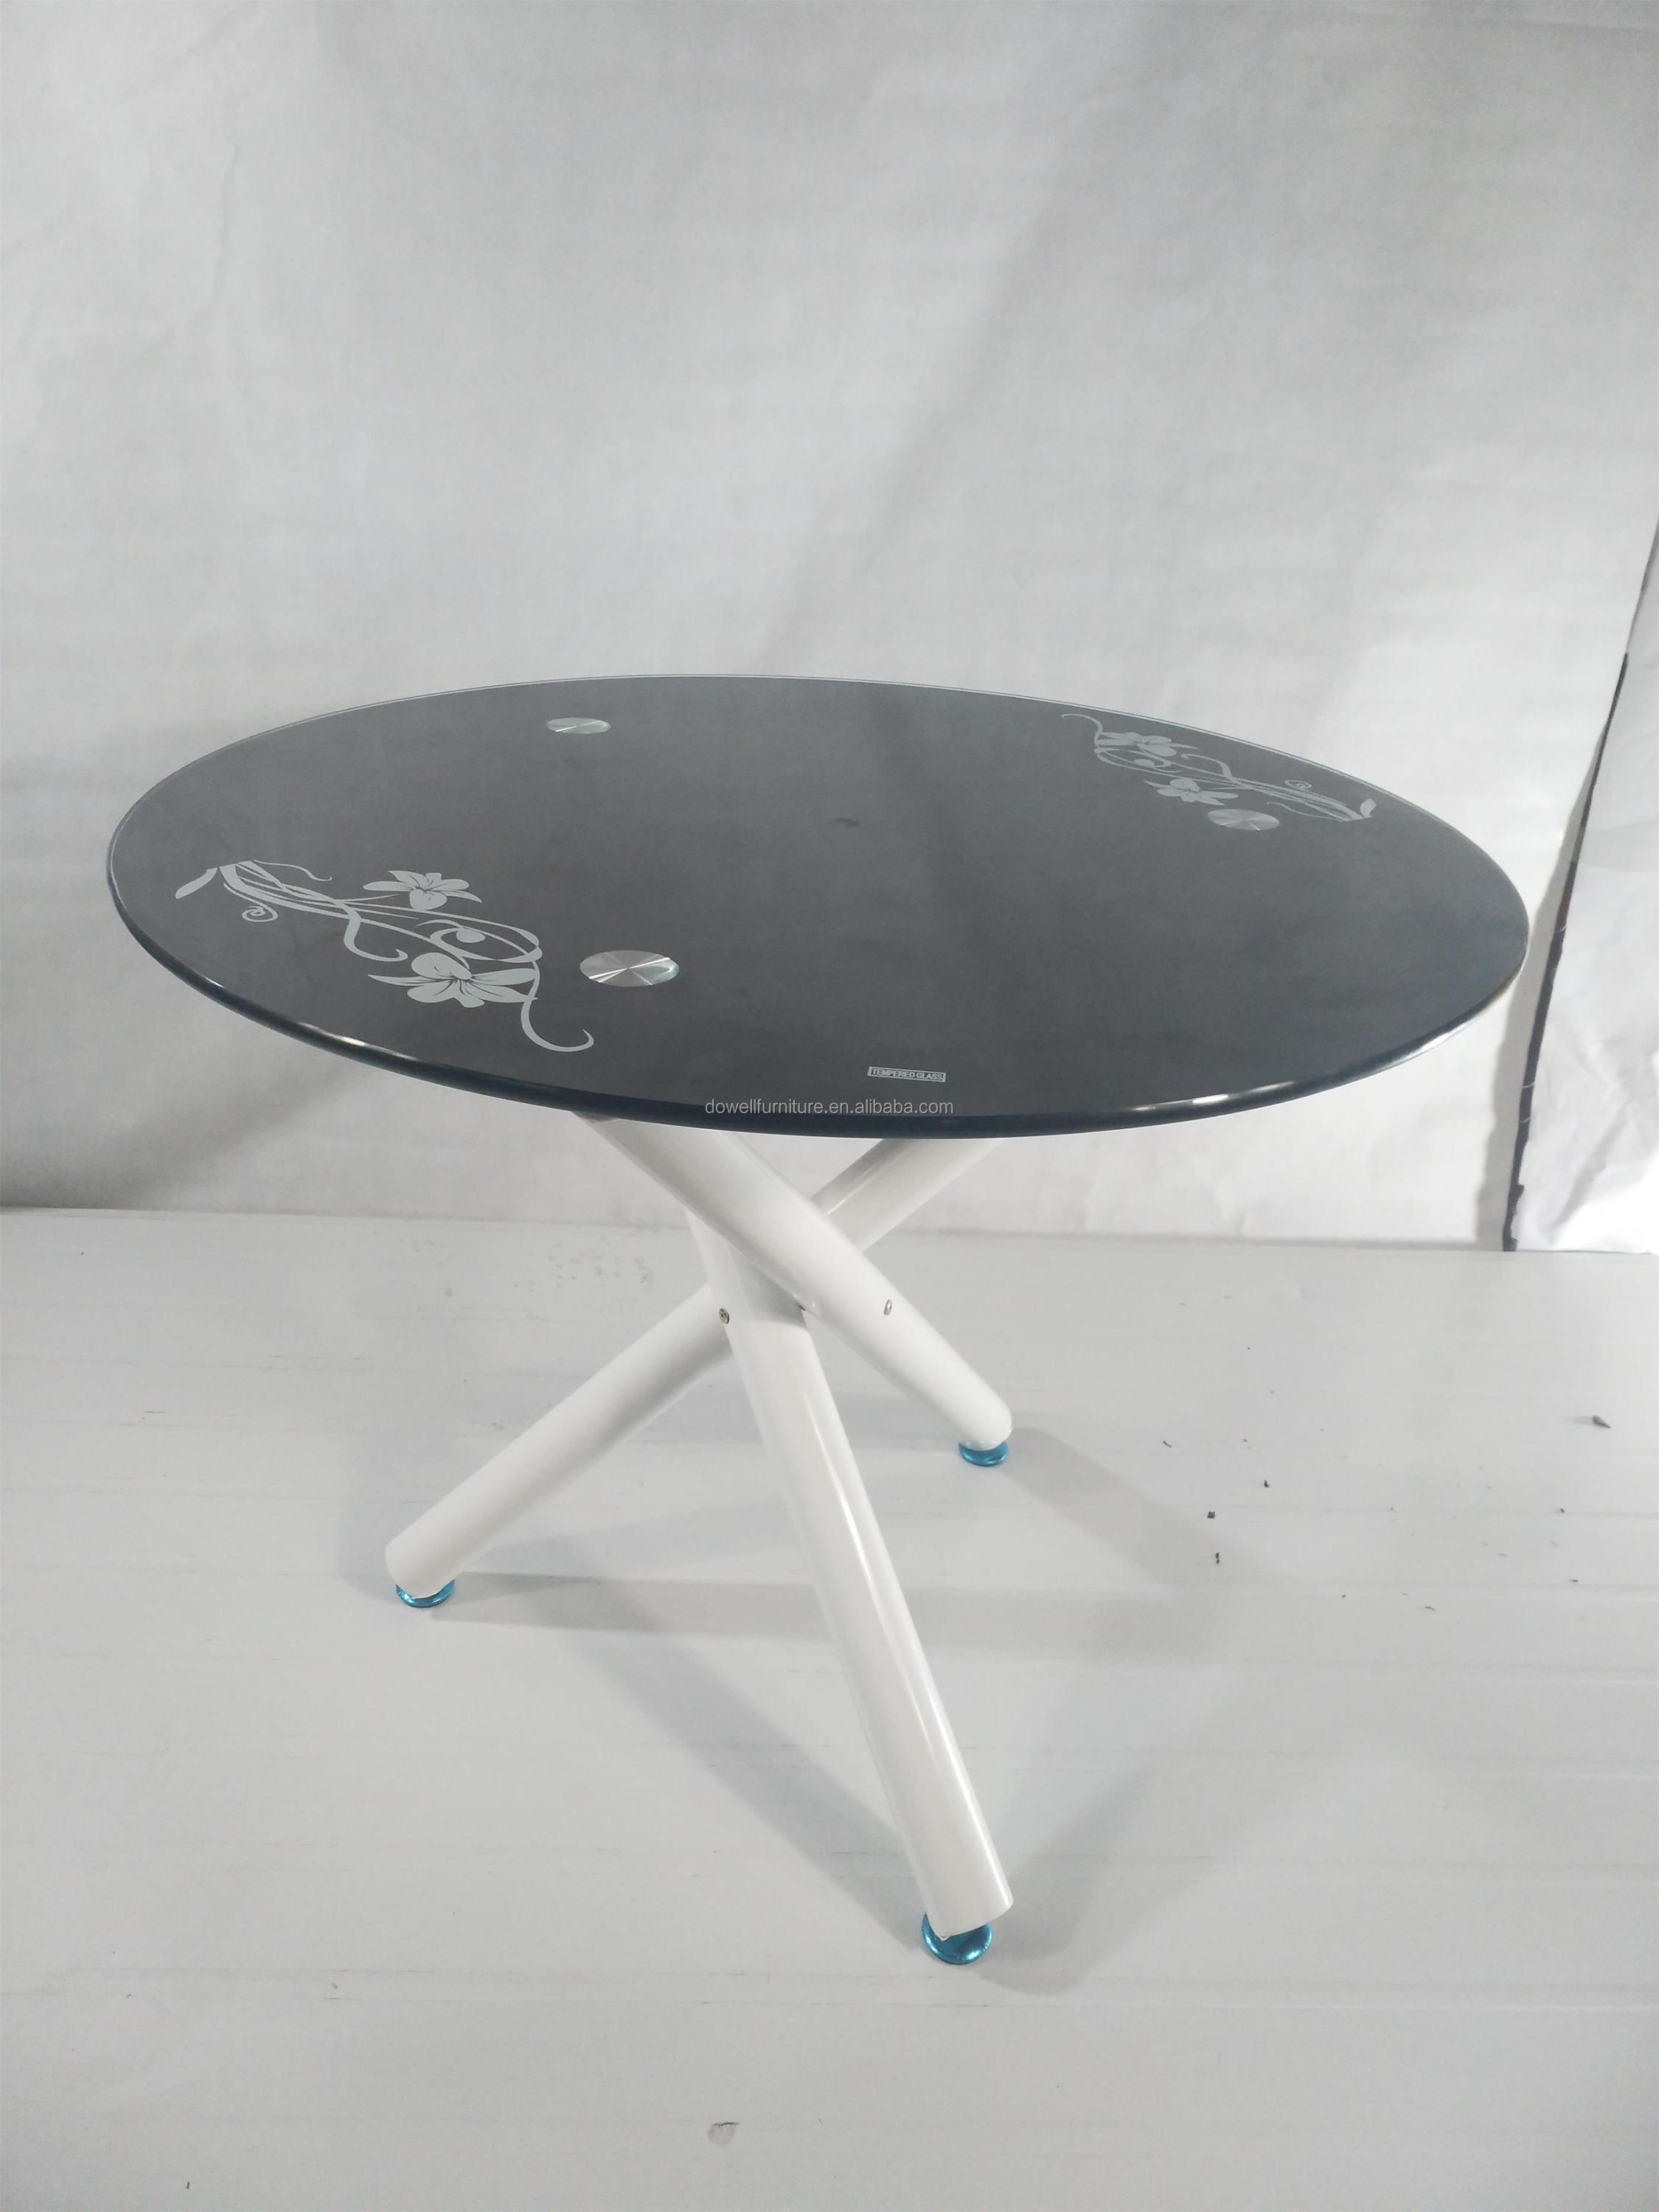 Rotating Top Table Rotating Top Table Suppliers and Manufacturers